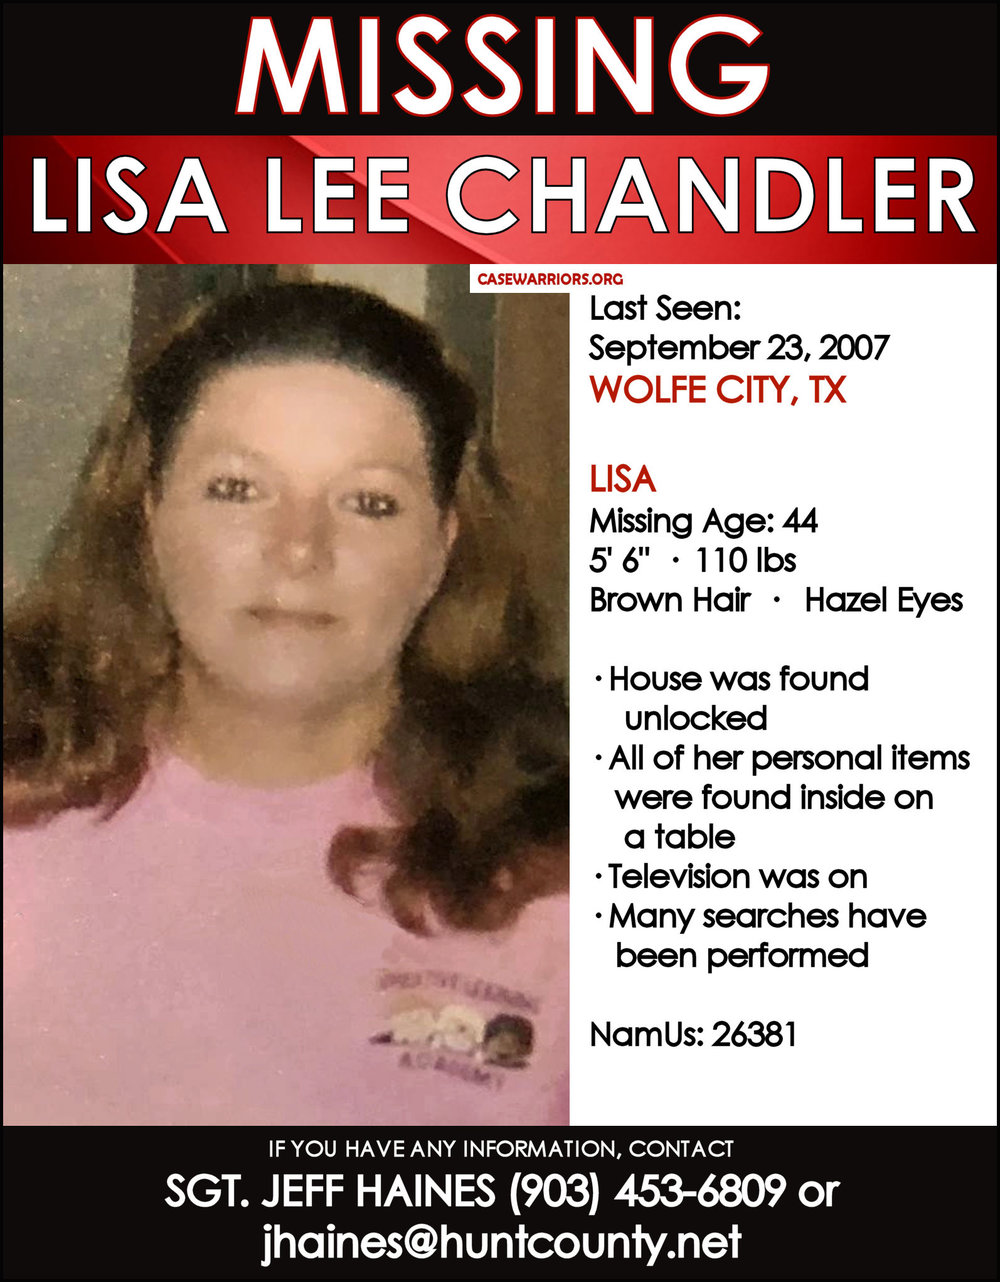 LISA CHANDLER